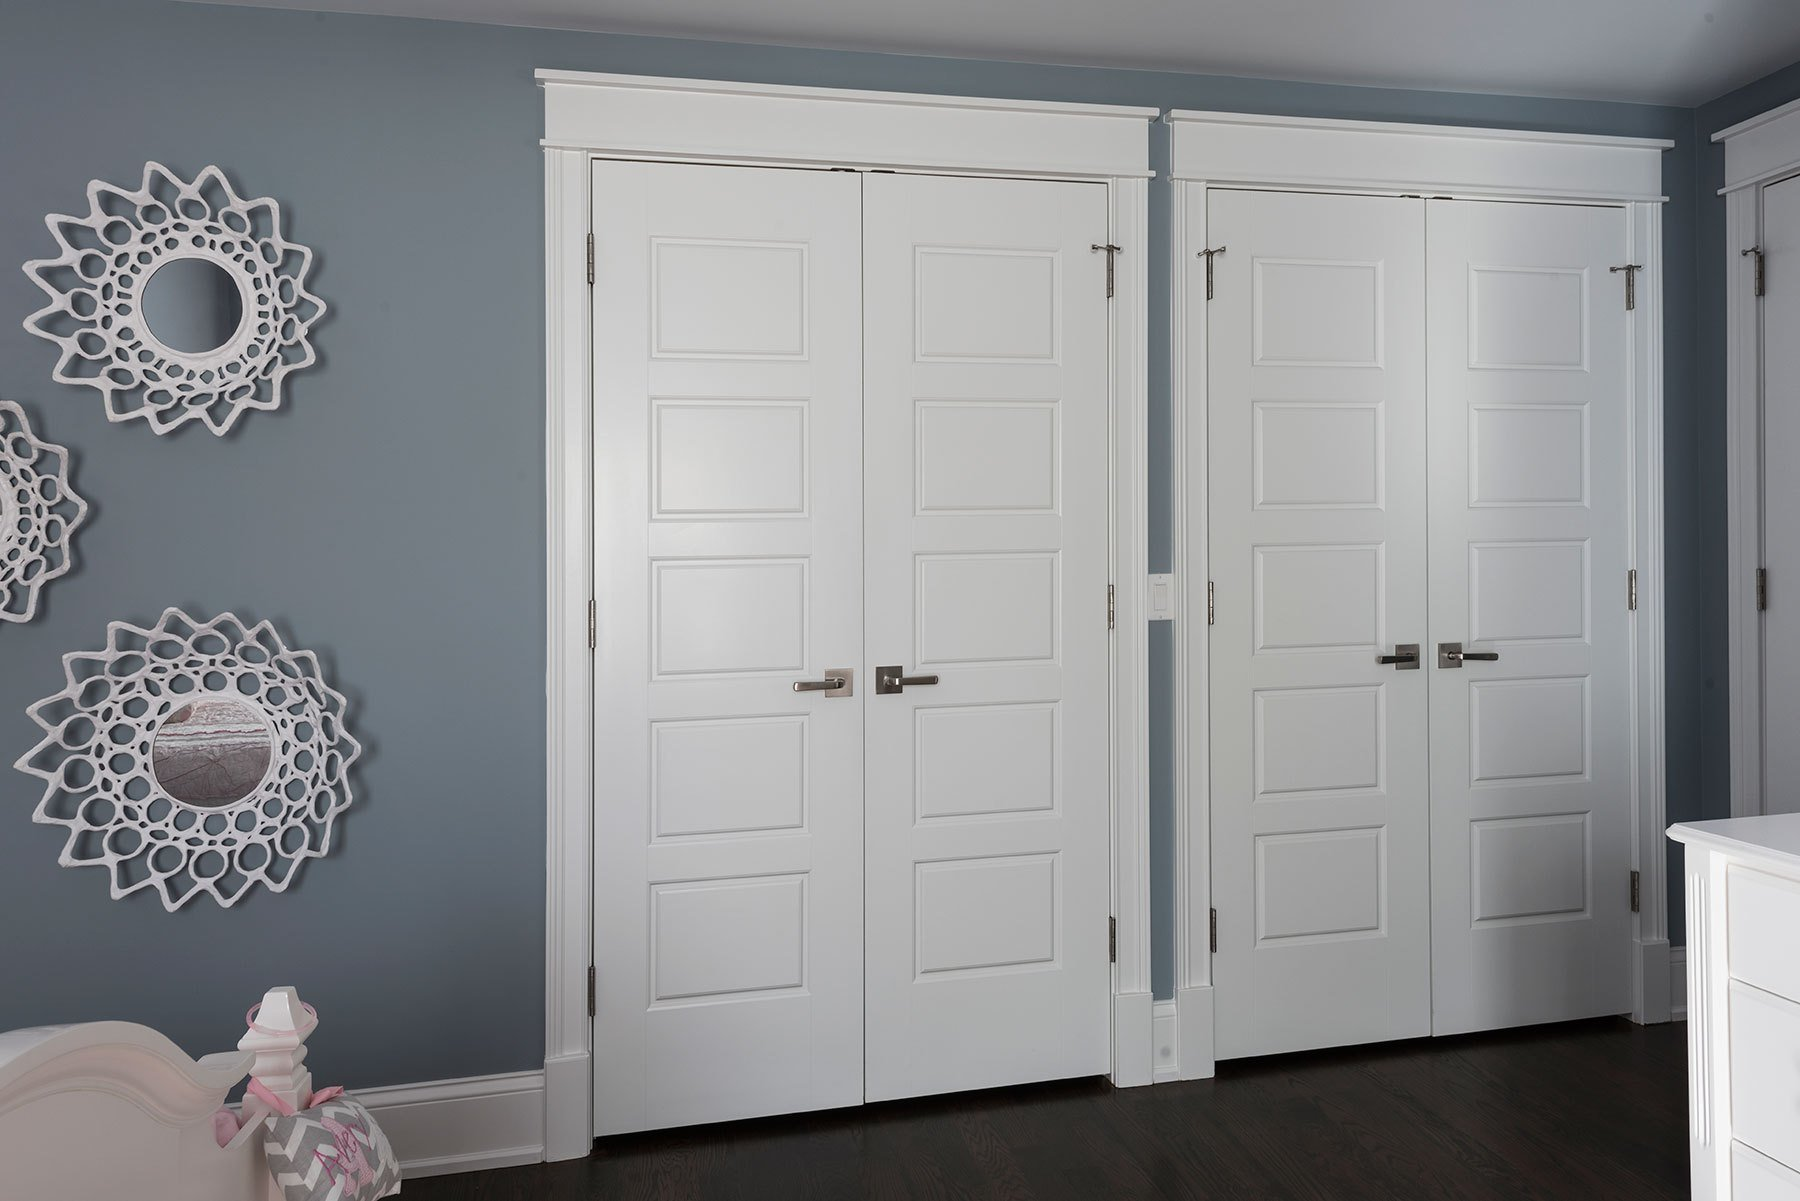 Best 5 Panel Paint Grade Mdf Double Closet Doors With Ball With Pictures